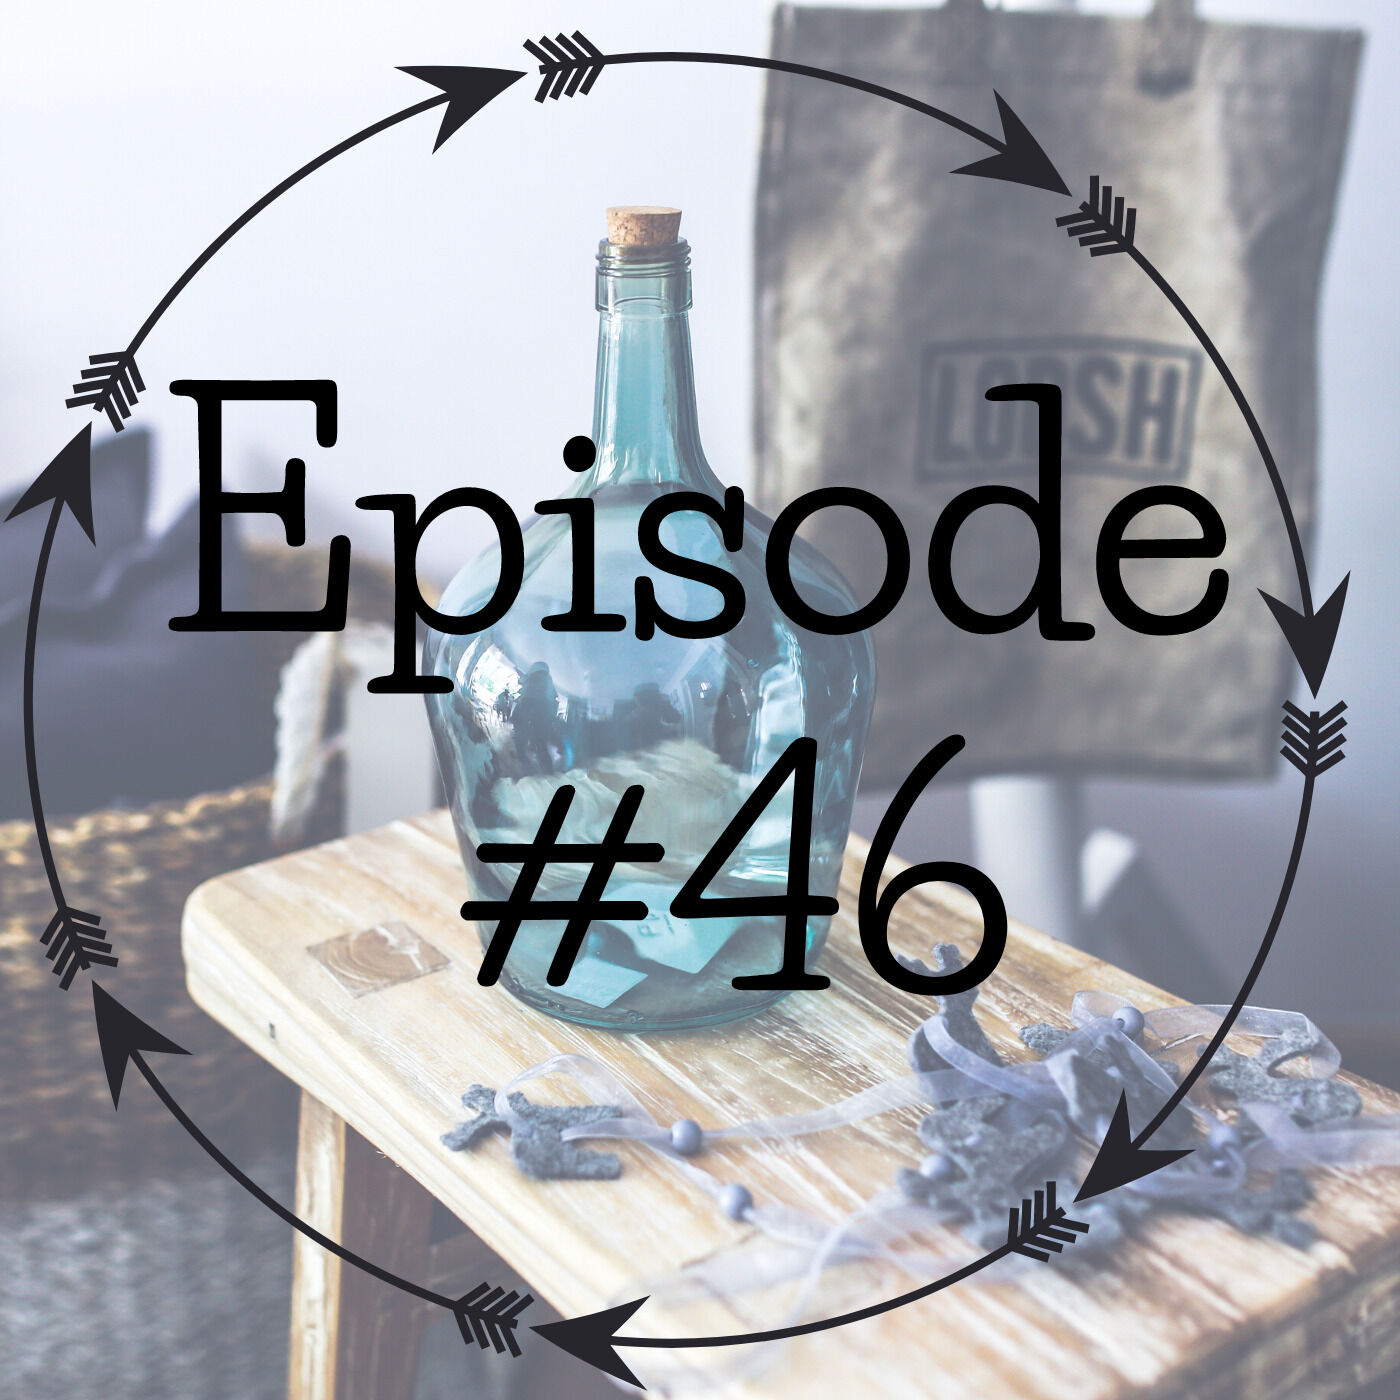 Episode #46: A dilemma about boundaries and charging expenses to your clients